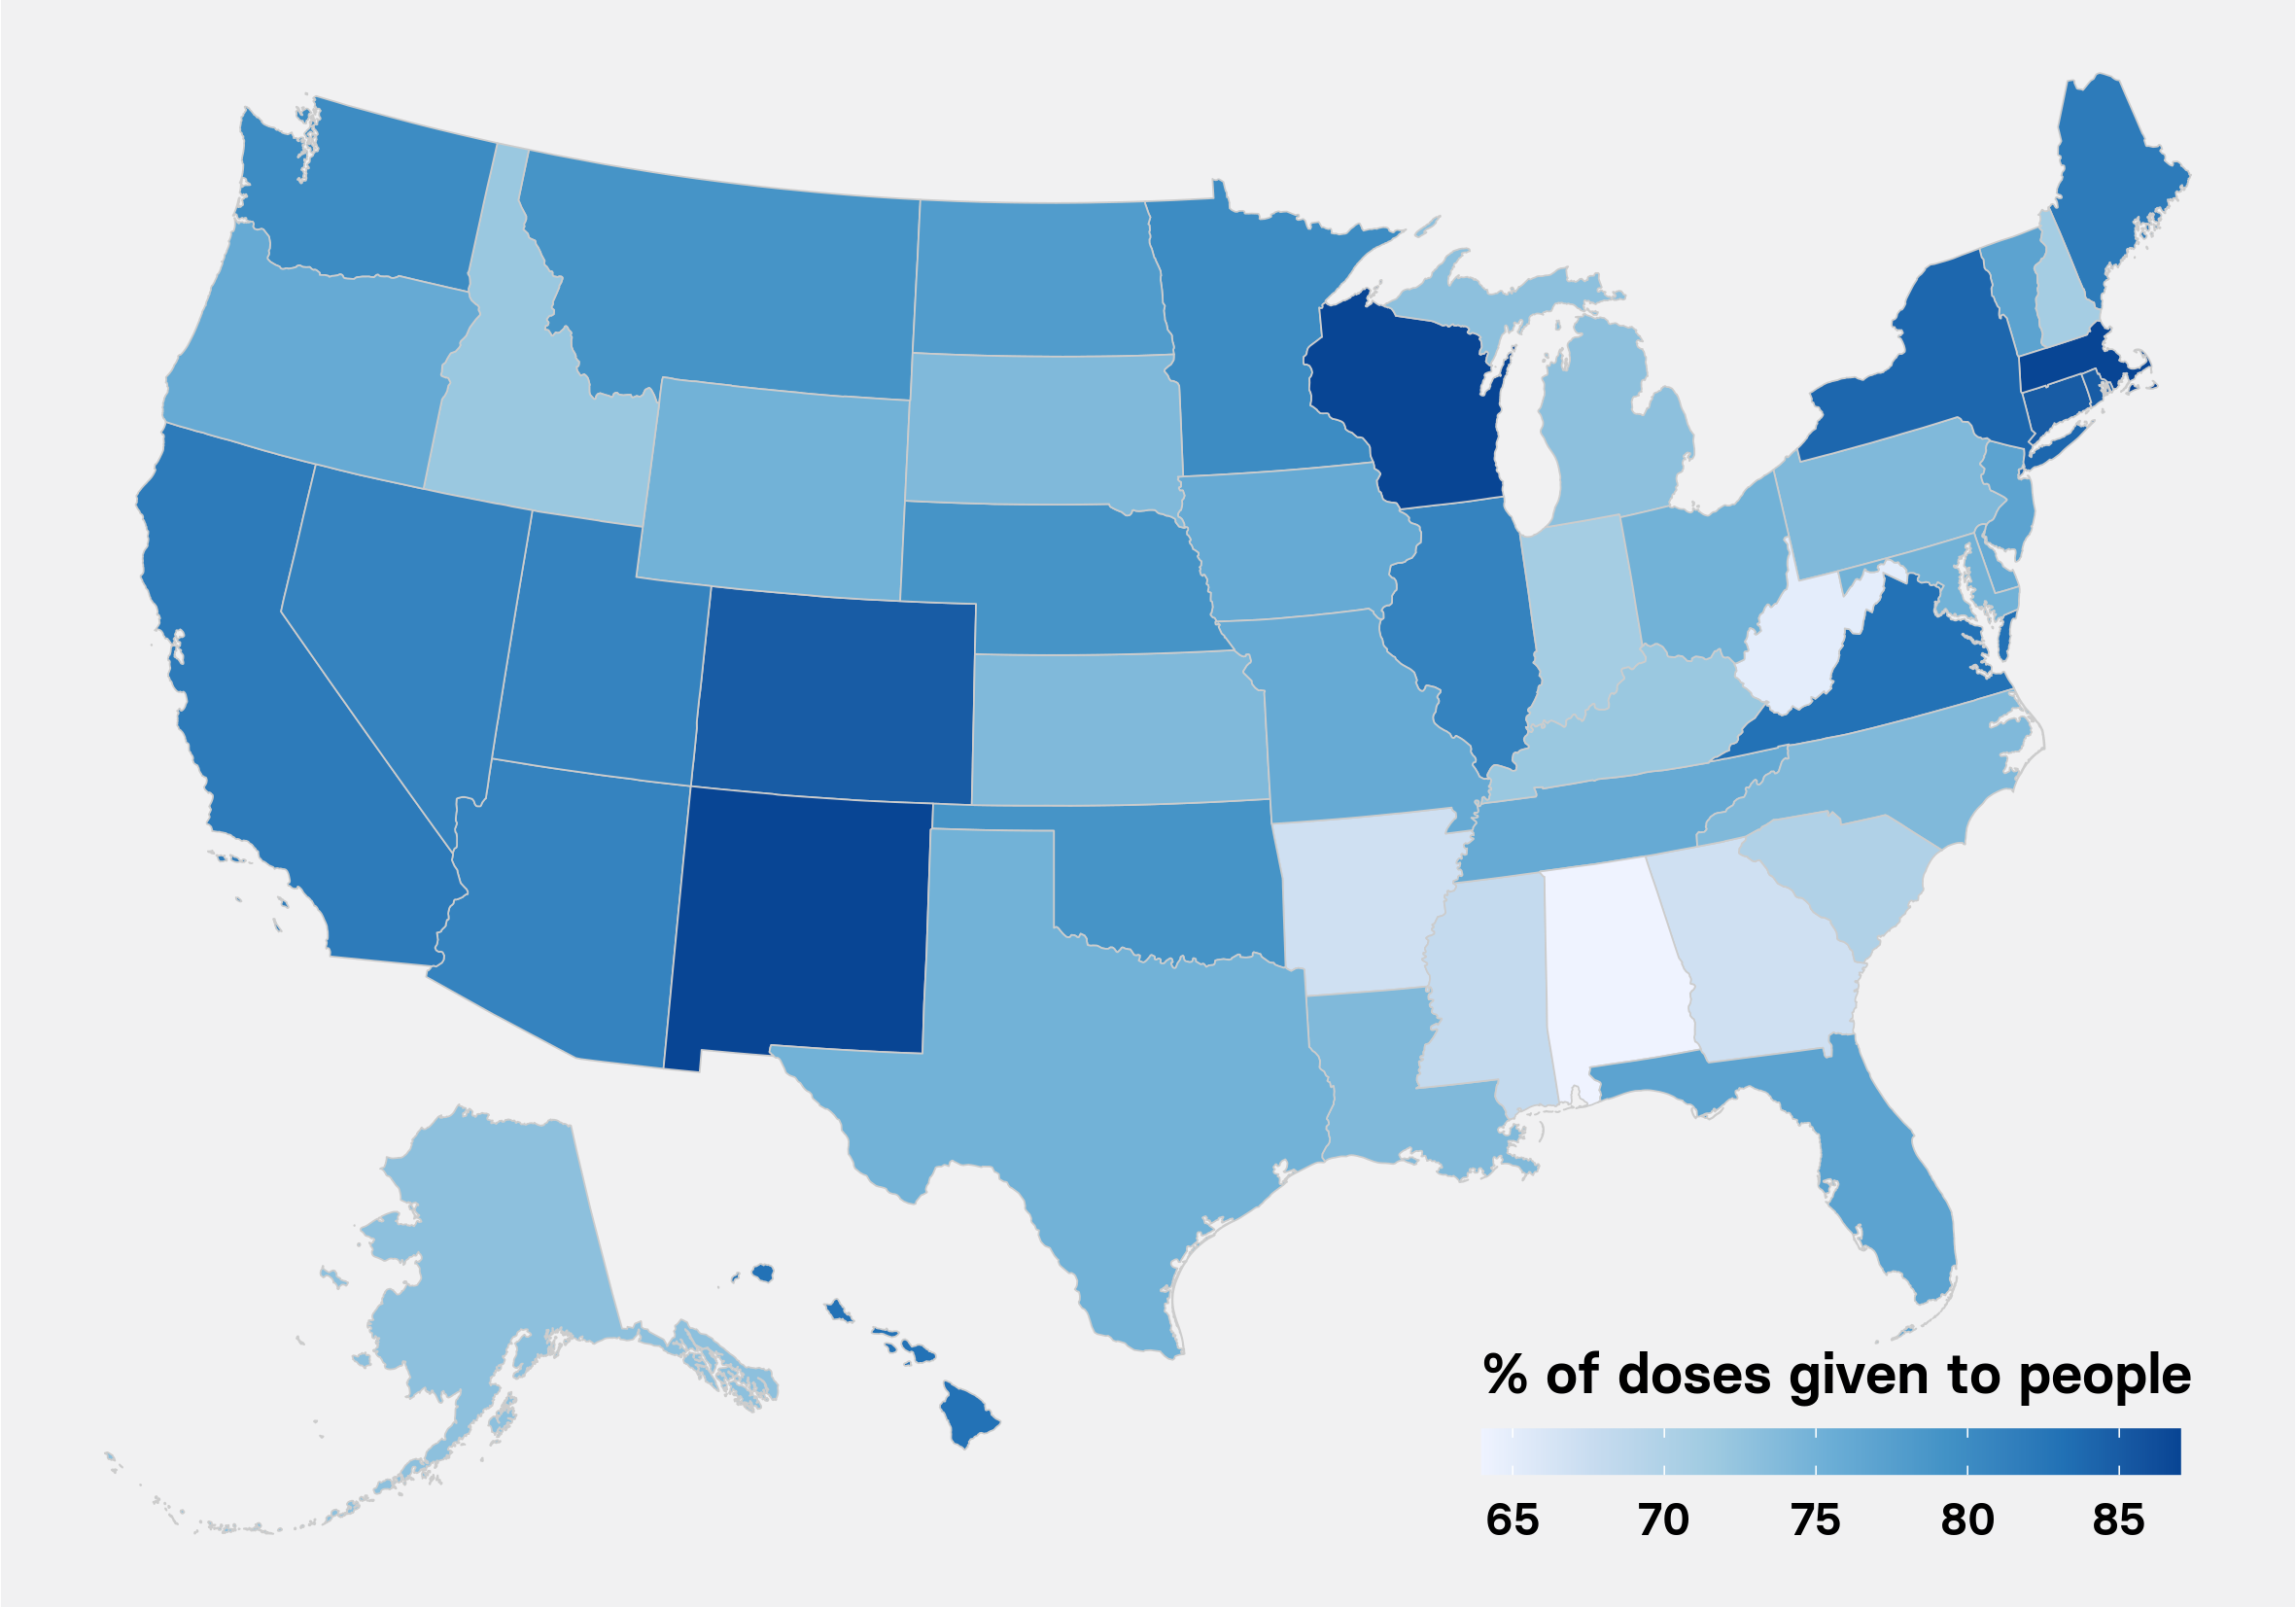 Perecnt of doses given to people by state